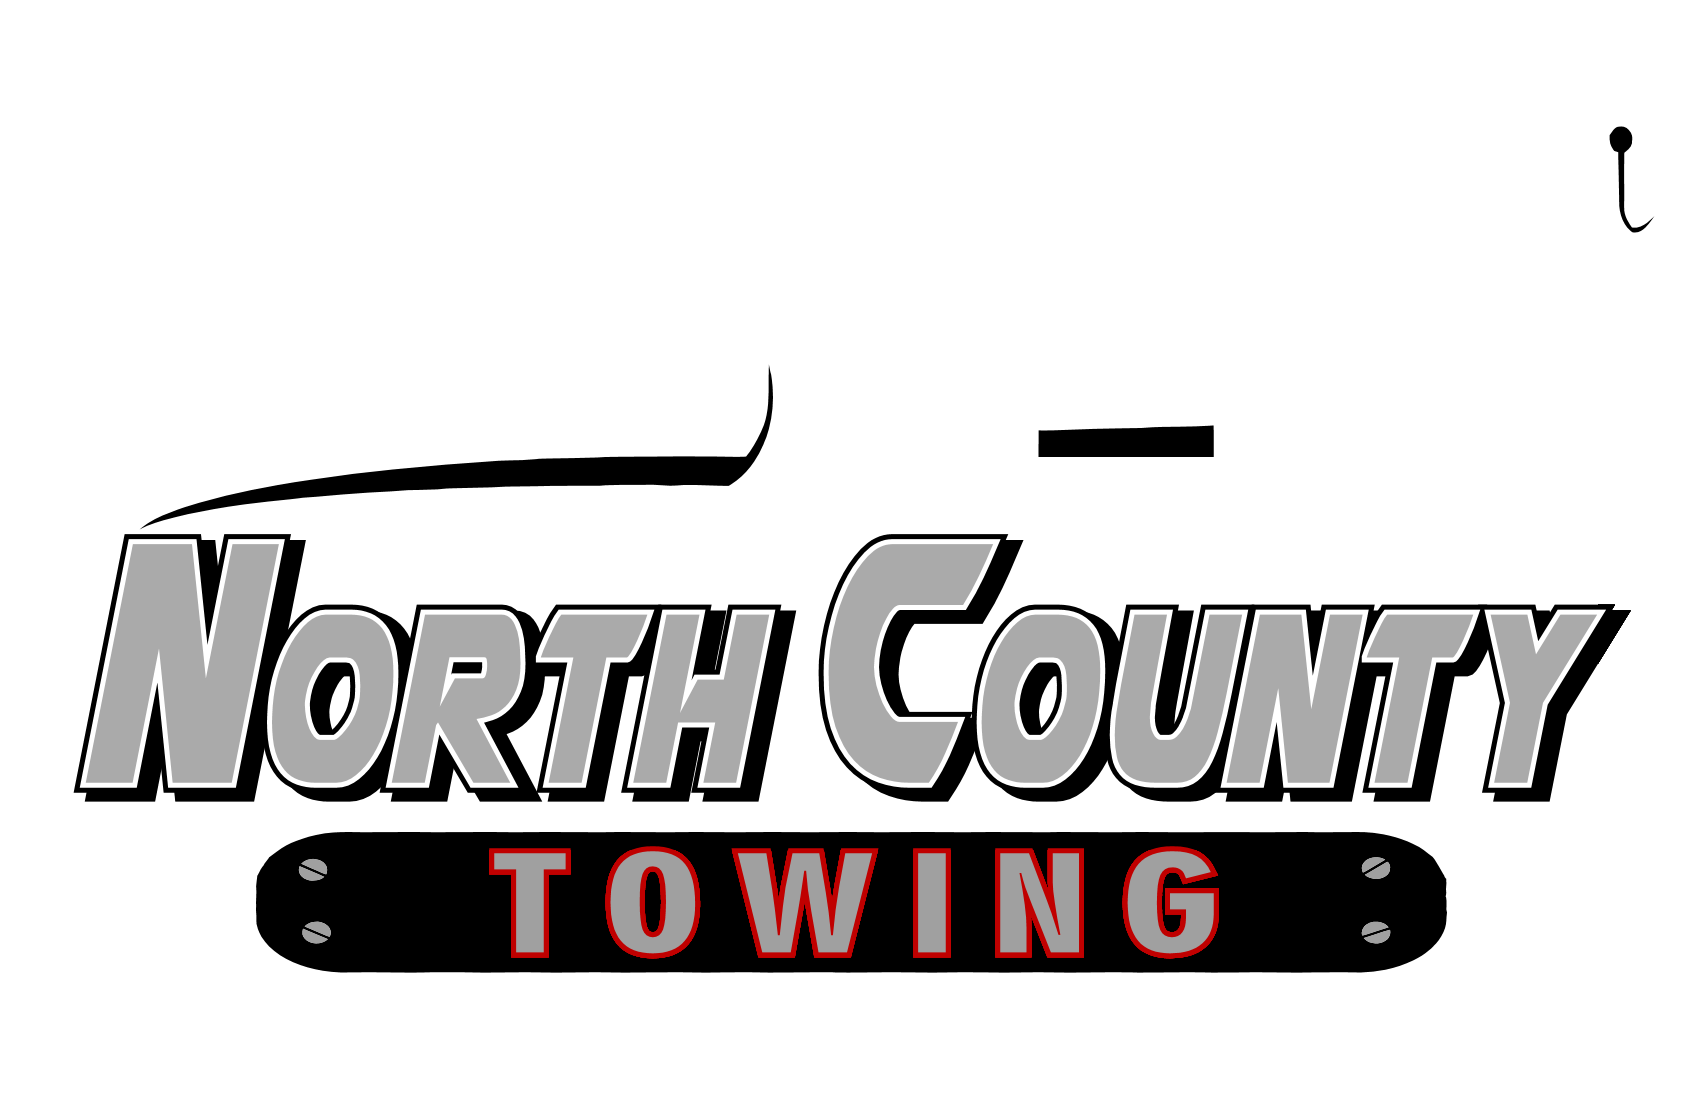 North County Towing